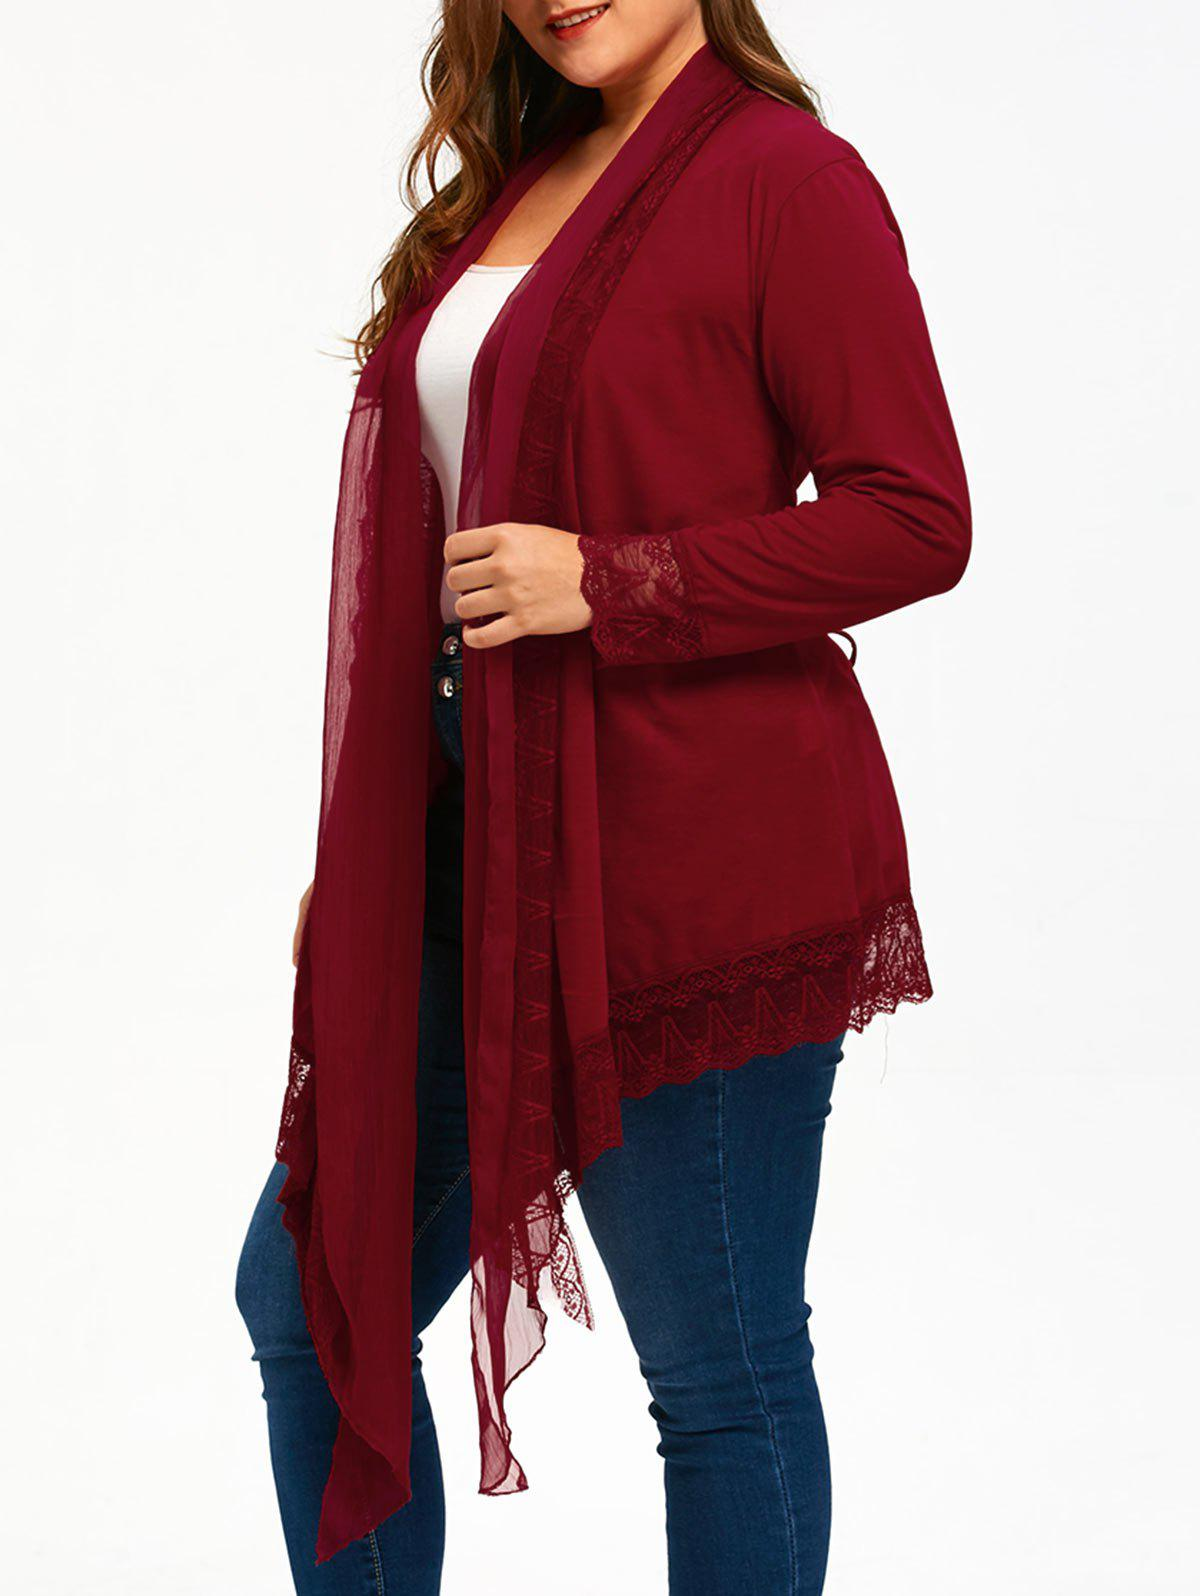 Lace Trim Plus Size Criss Cross Cardigan - WINE RED 5XL